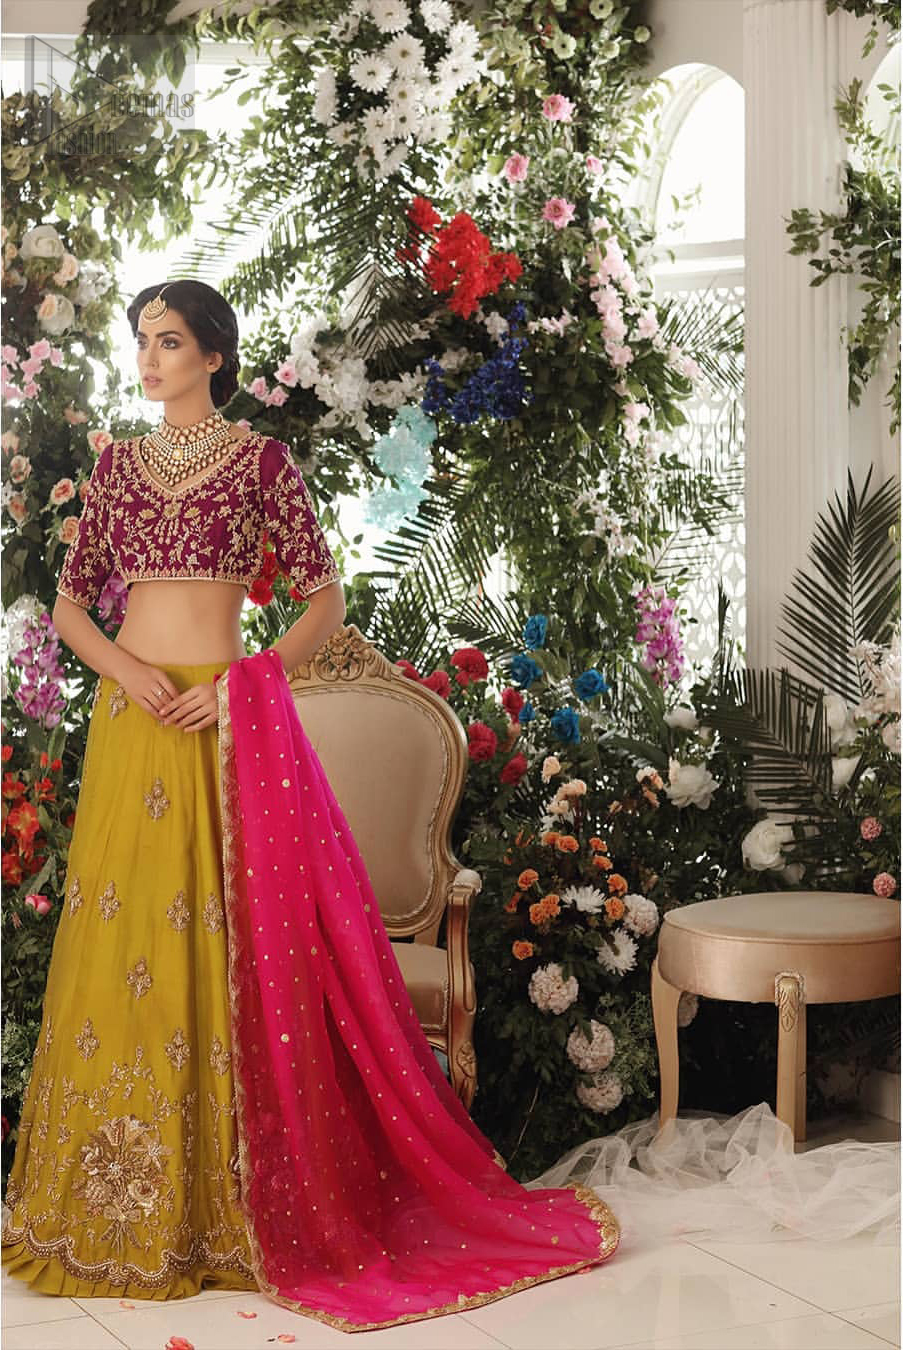 Adorn yourself with this breath-taking mehndi lehenga outfit. This beautiful mehndi dress comes with yellow lehenga with scattered beautiful embellished motifs and floral booties around a large central motif and it finished with frilled border. It is coordinated with a beautiful plum blouse adorned with zardozi work in the shades of golden and silver. Style it up with pink organza dupatta with sequins sprayed all over it along with gota finishing on all four sides.